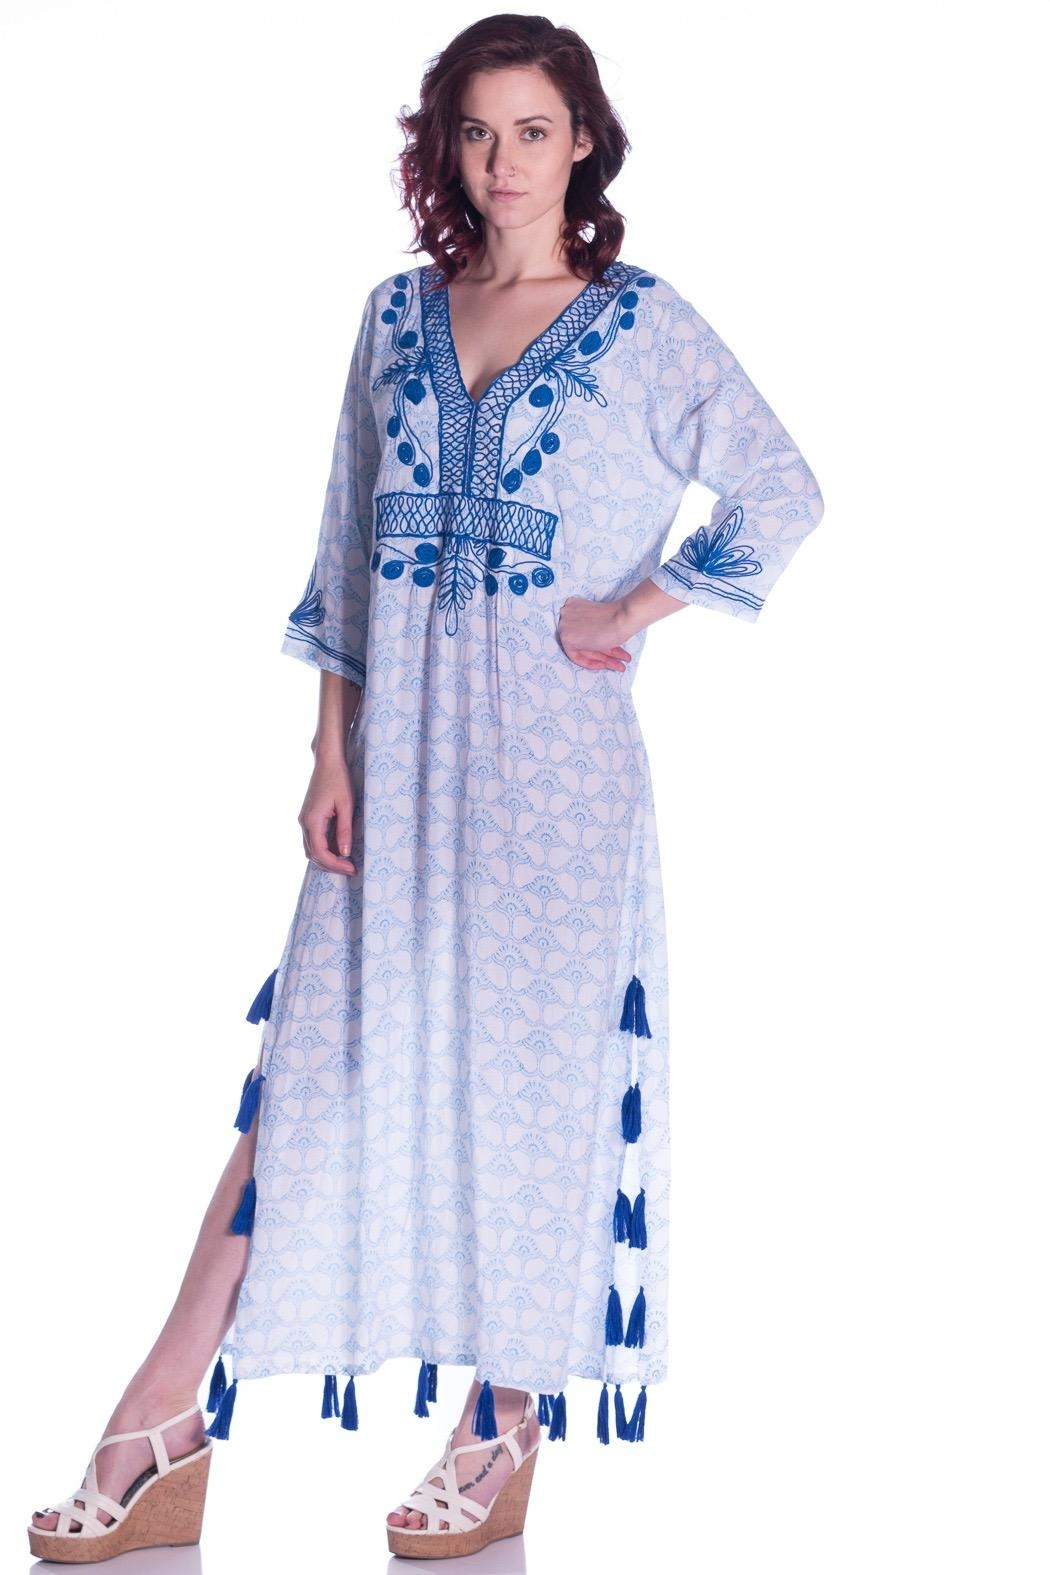 6fb3989aefbfb Roberta Roller Rabbit Bohemian Long Dress from New Hampshire by ...